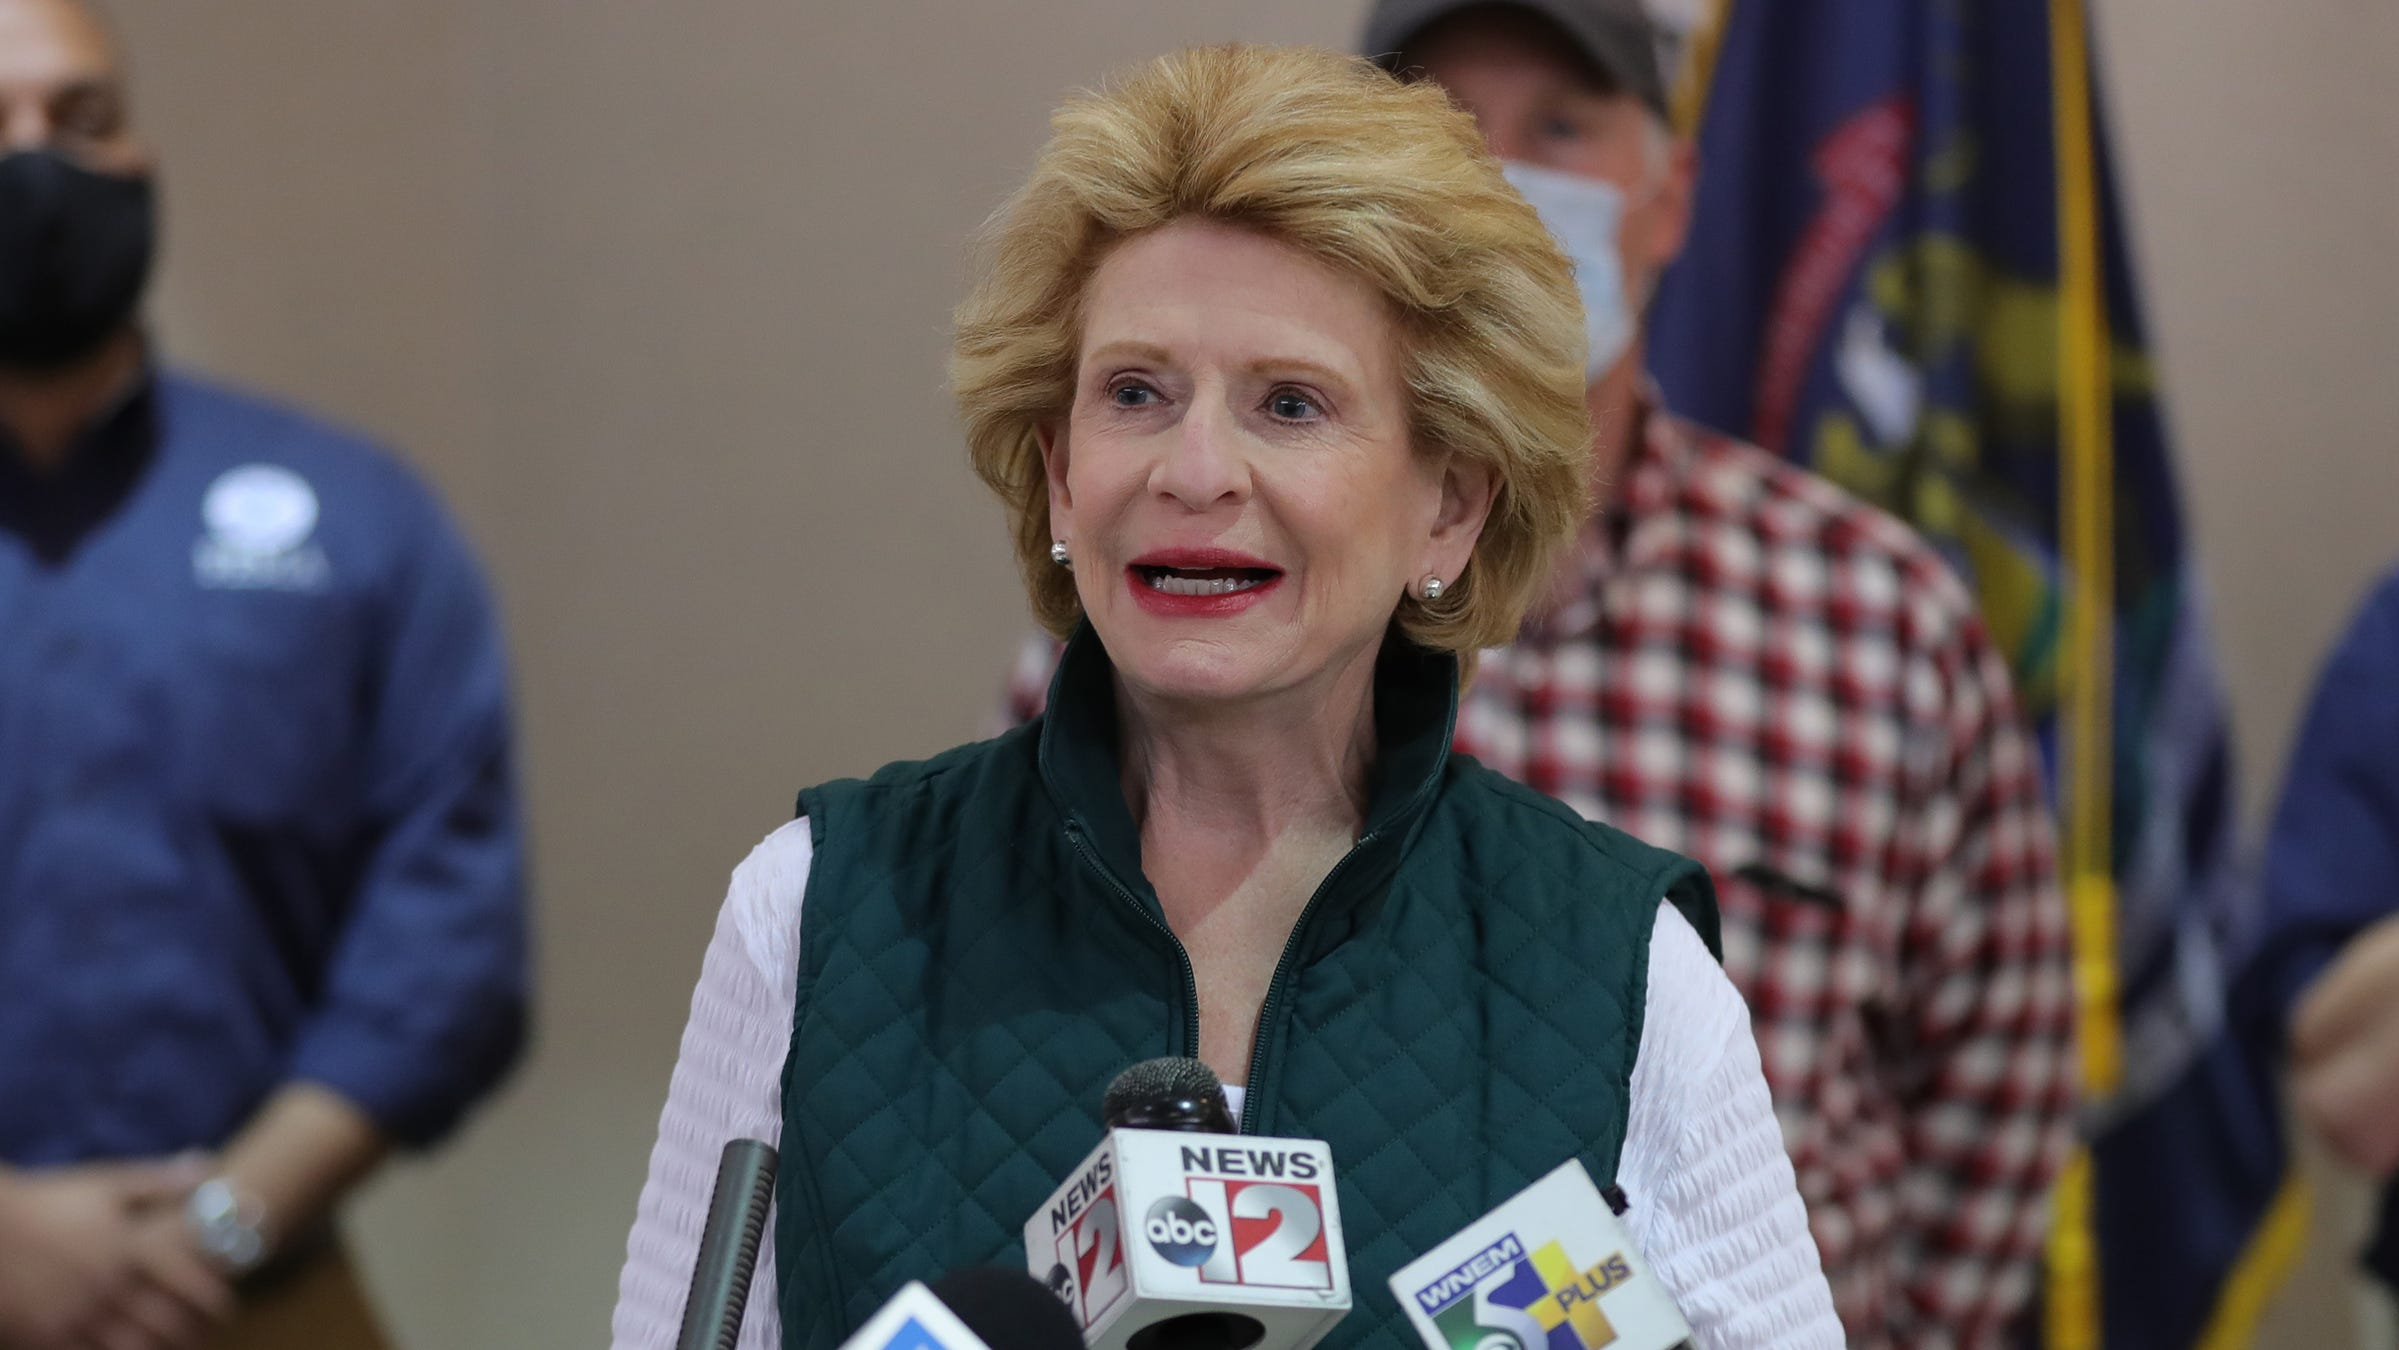 Two charged with making threats to Michigan public officials, including Debbie Stabenow